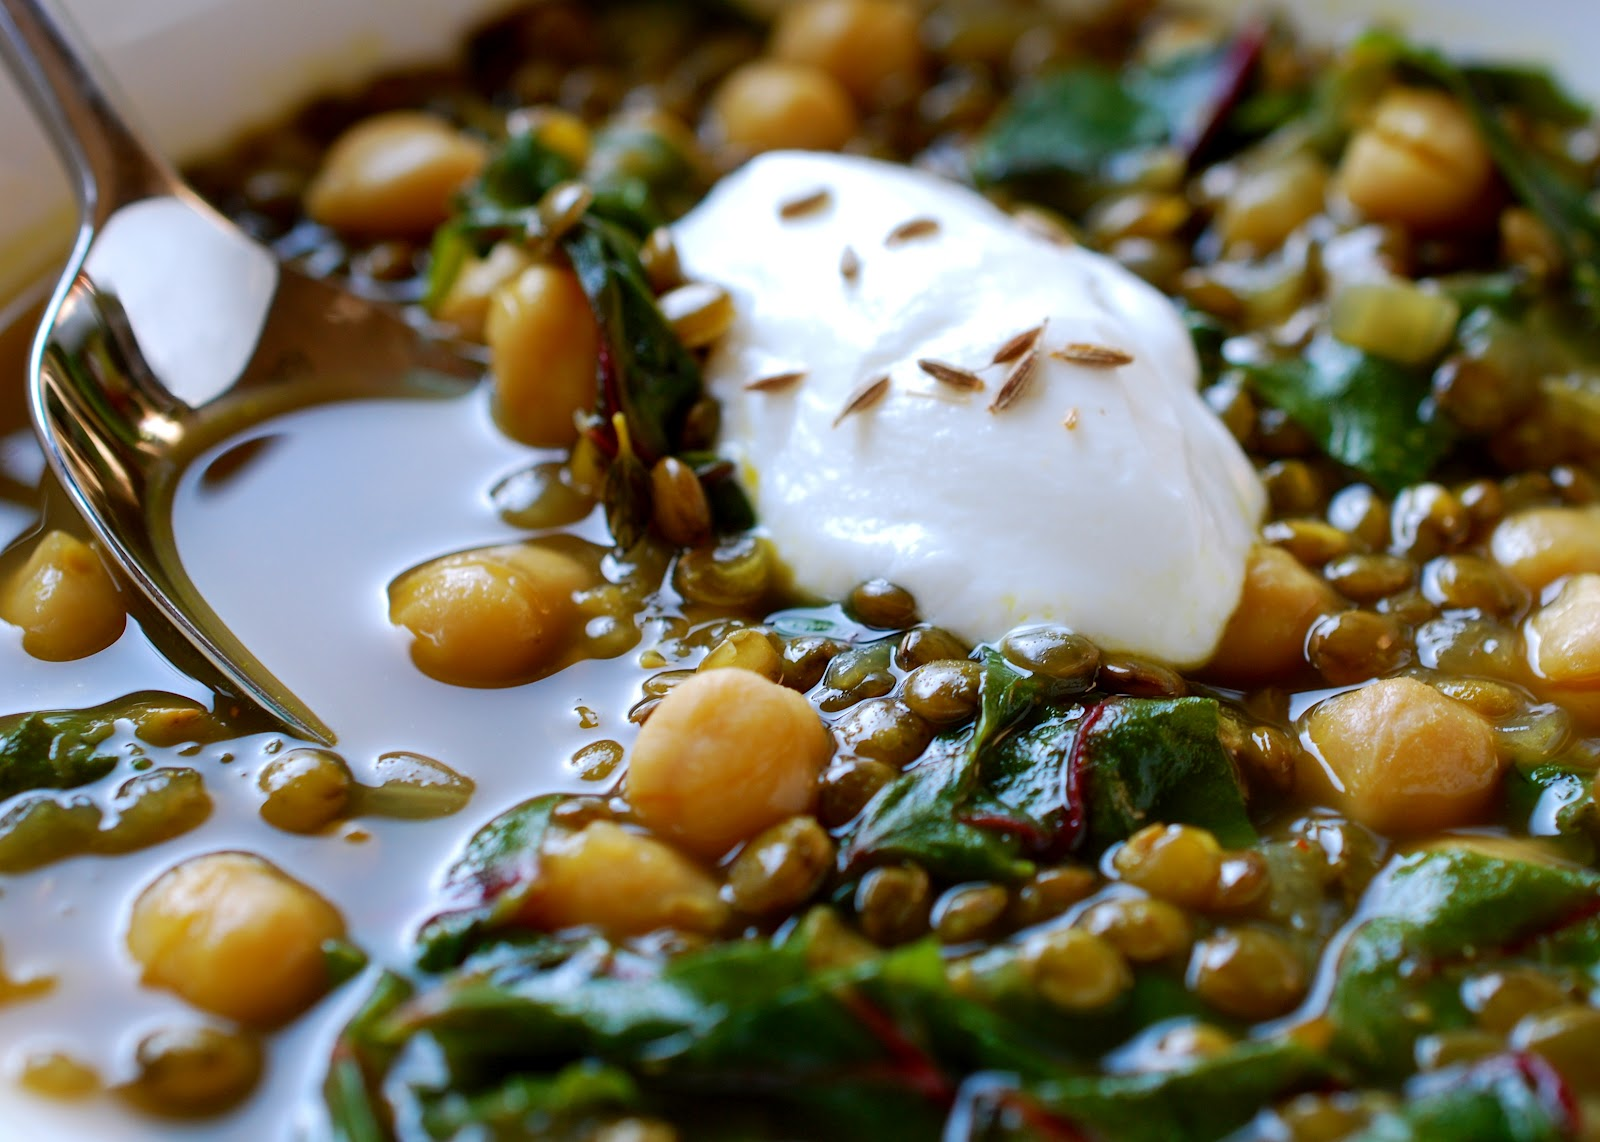 Cooking with Larue: Curried Chickpea, Lentil and Swiss Chard Stew